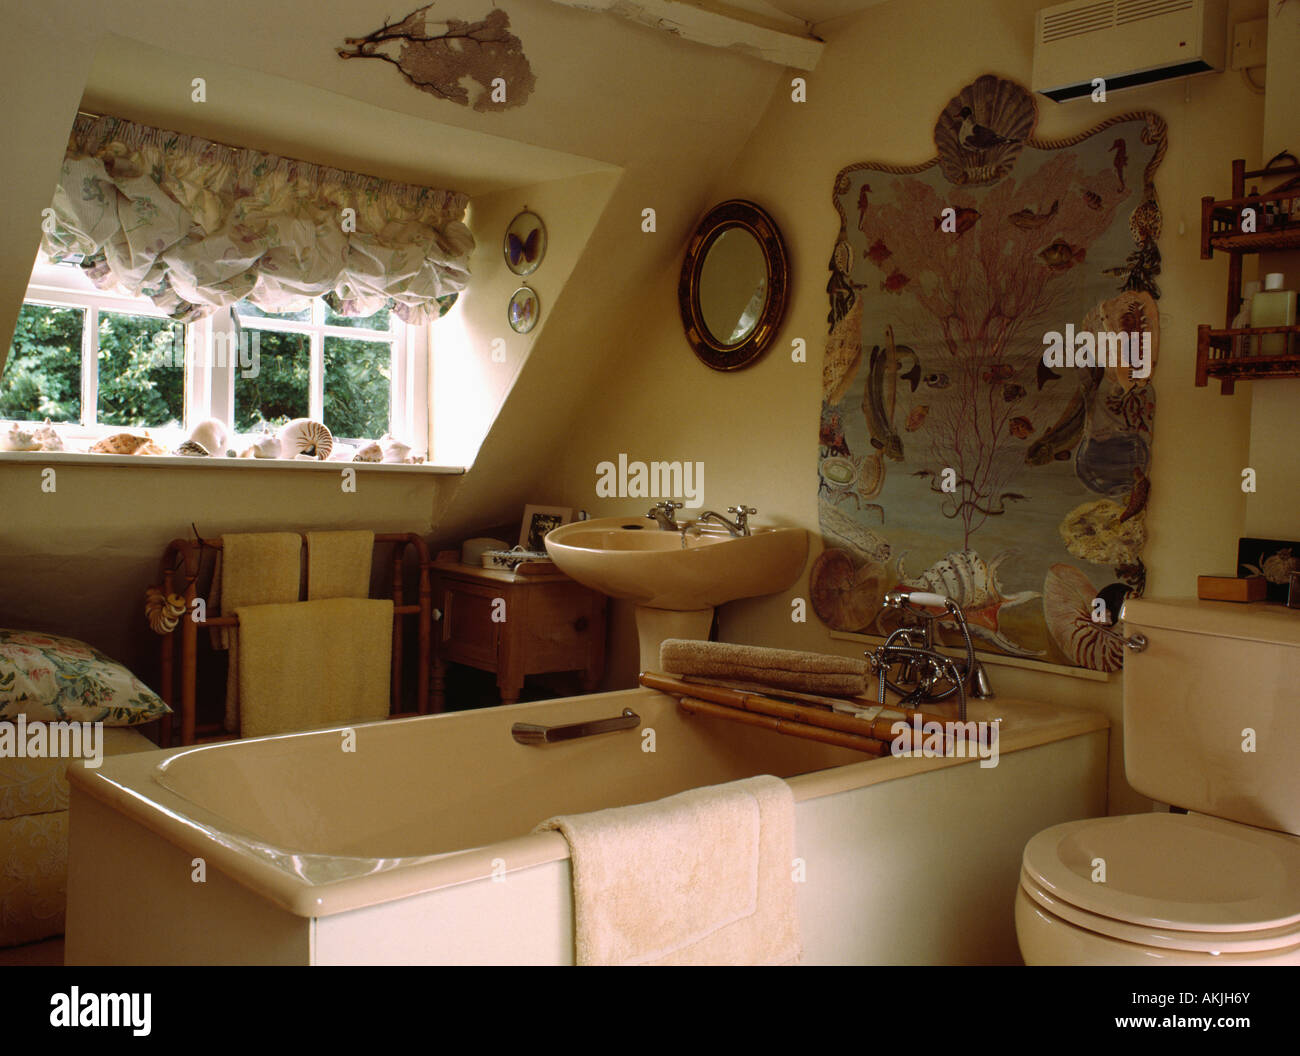 Pink bath and toilet in attic bathroom with festoon blinds at the ...